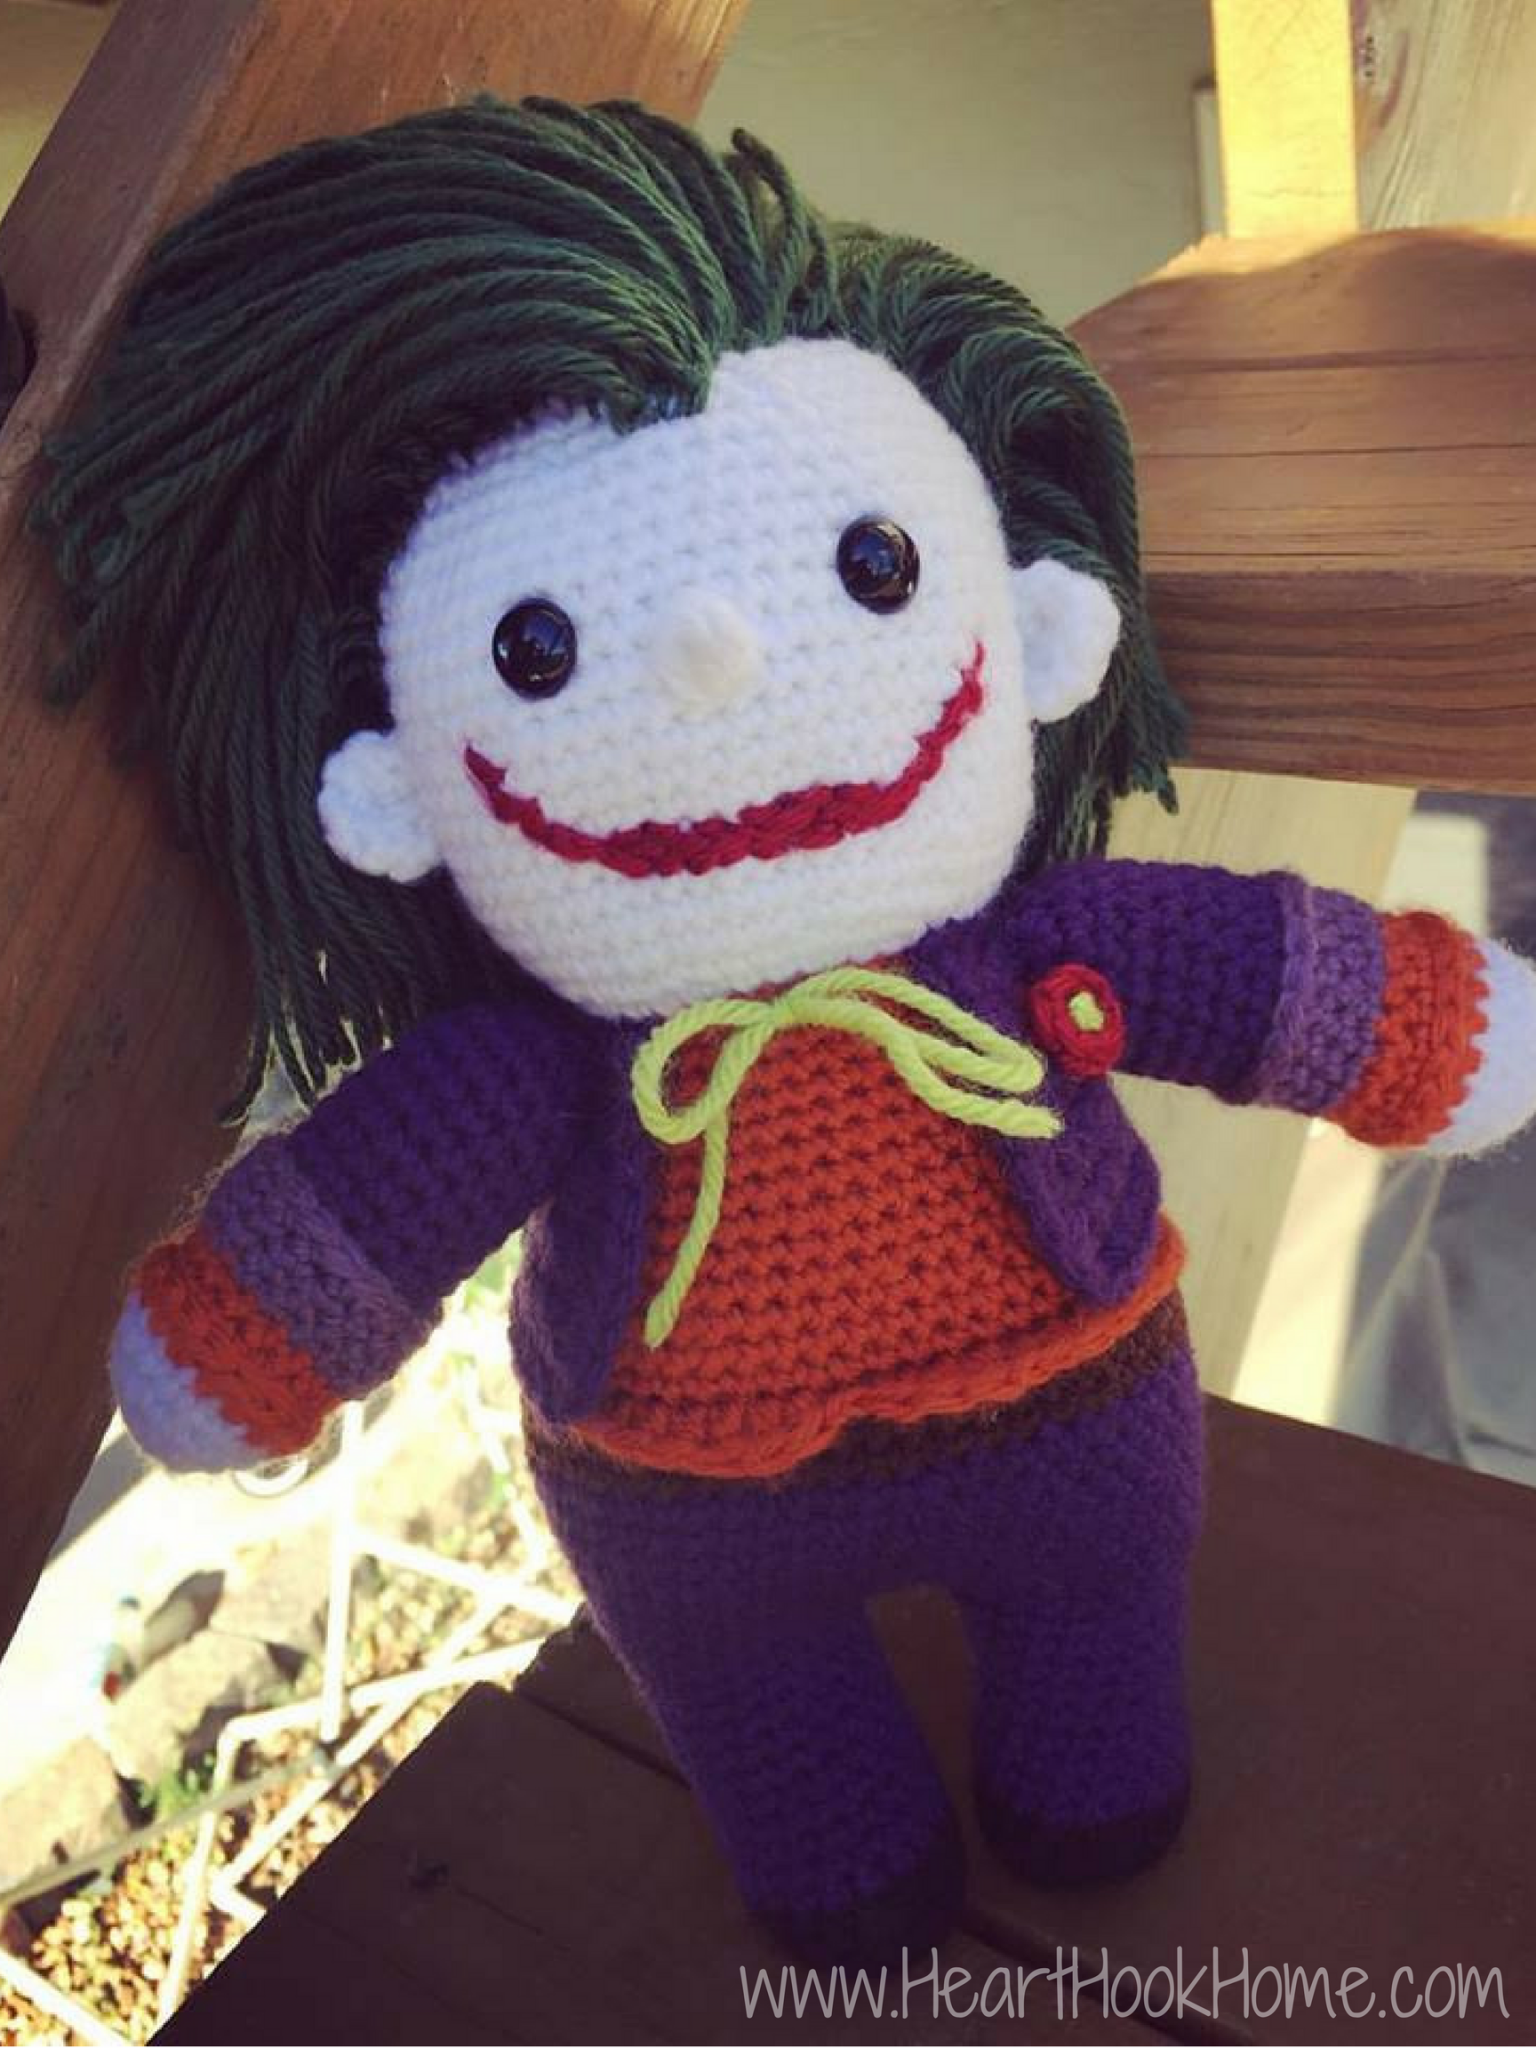 The joker batman amigurumi crochet pattern amigurumi free the joker batman amigurumi crochet pattern bankloansurffo Choice Image